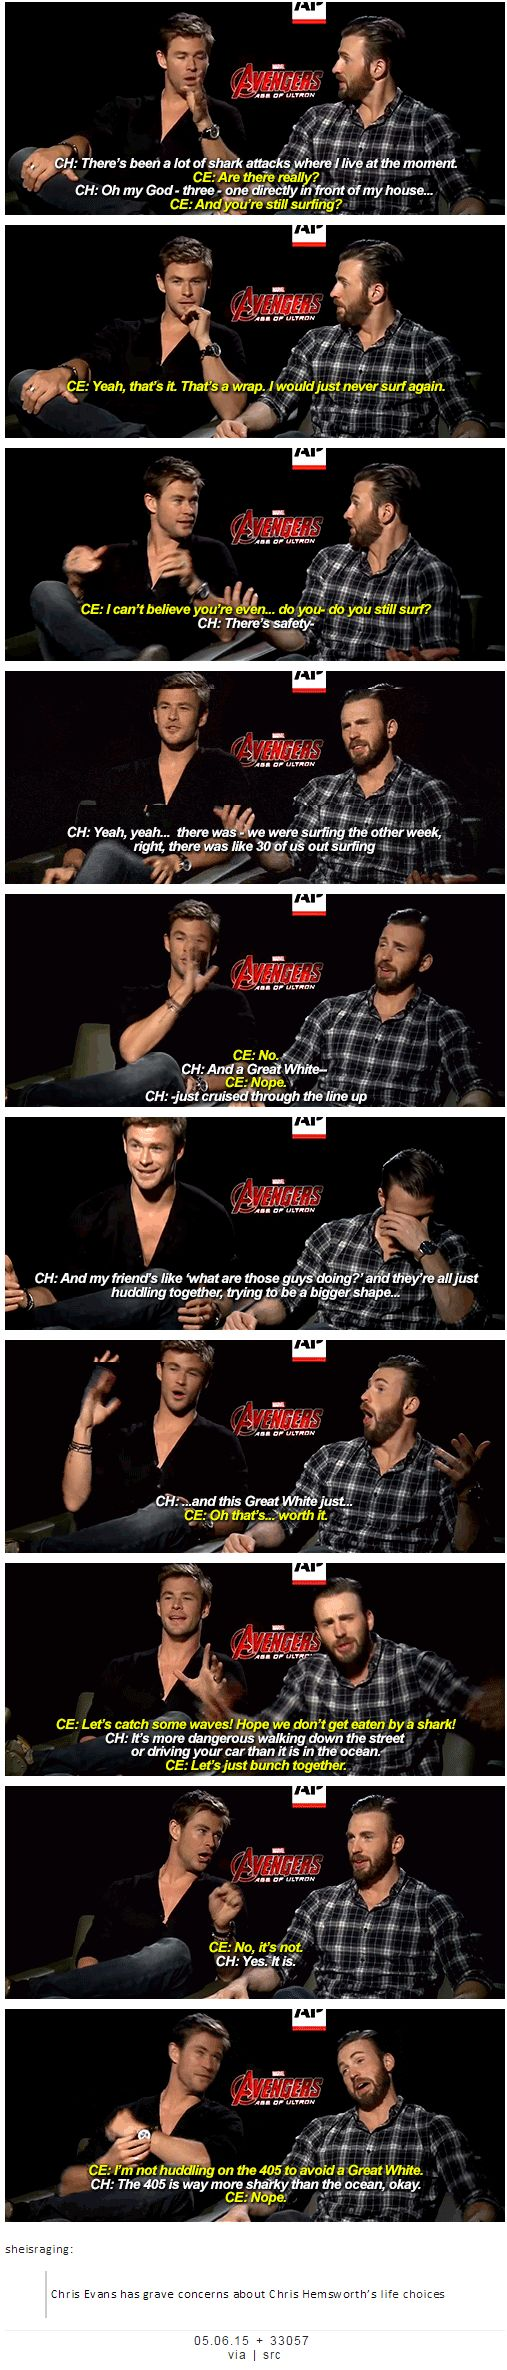 Chris Evans has grave concerns about Chris Hemsworth's life choices | THESE TWO.